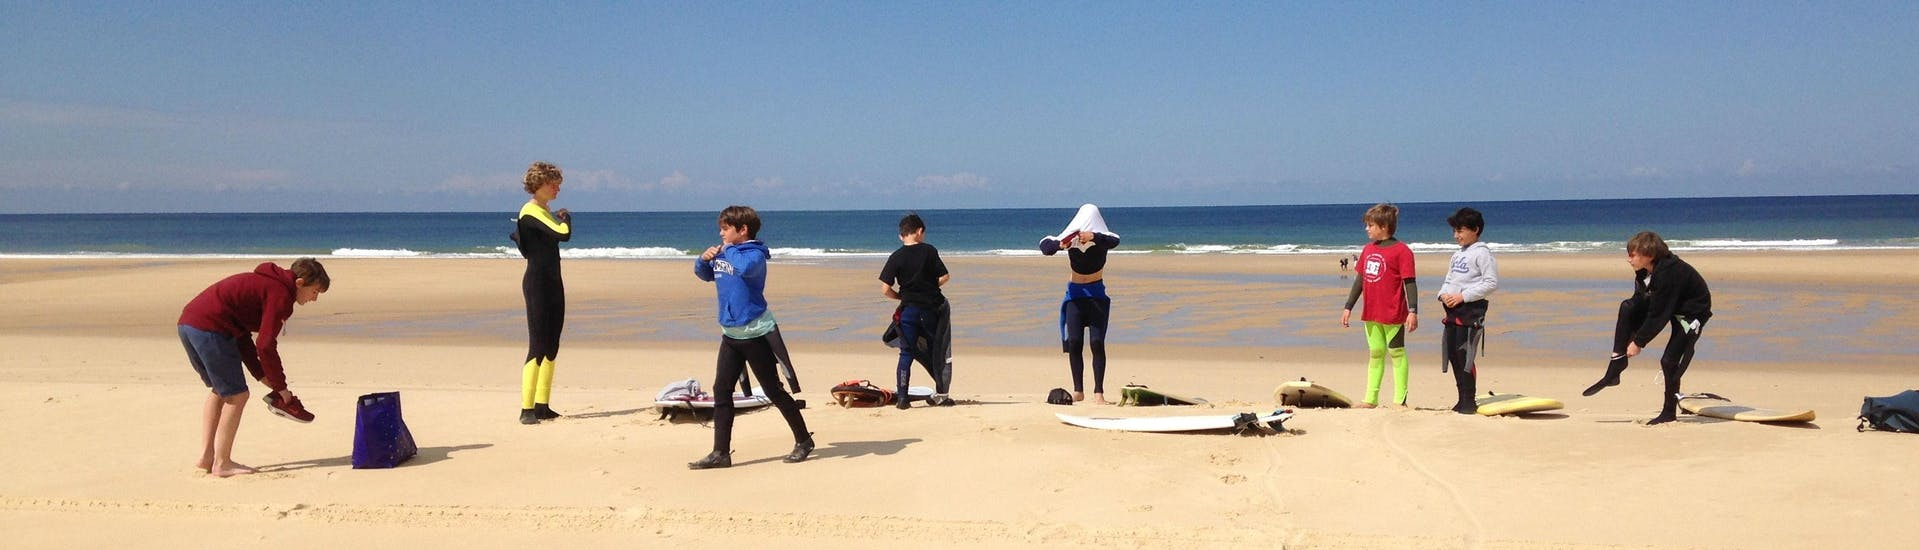 children are having surfing lessons on the sail fish beach in Cap-Ferret with Nomad surf school.